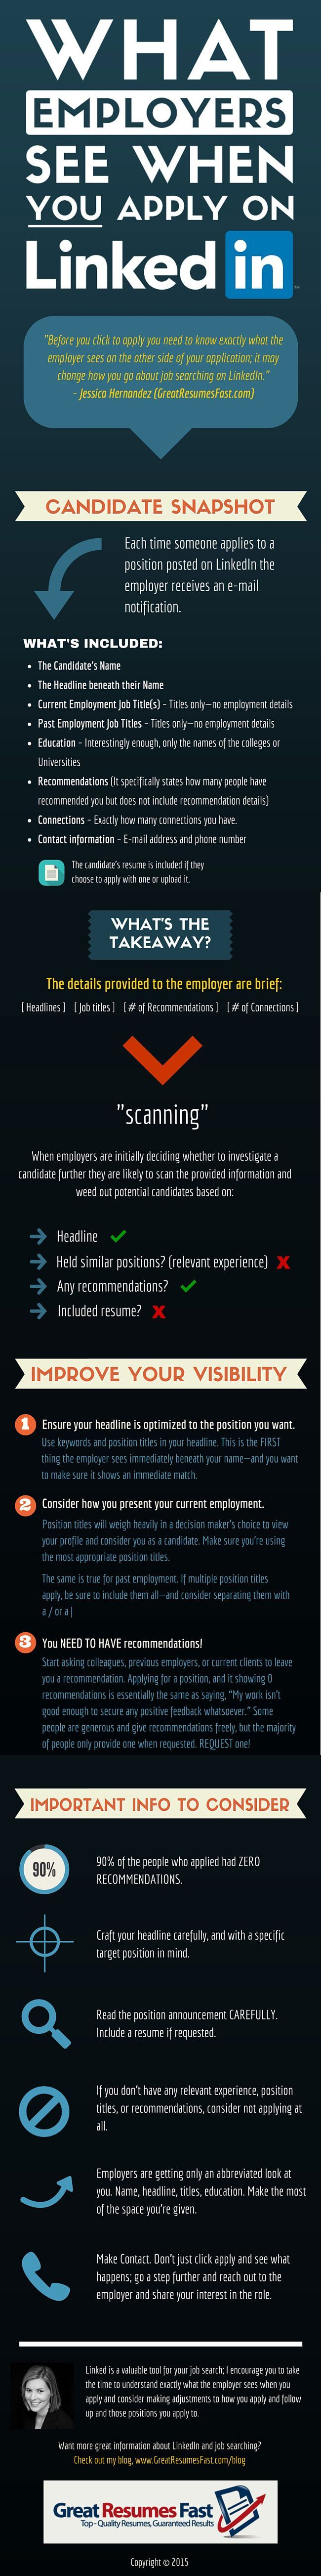 What Employers See When You Apply on LinkedIn | Great Resumes Fast | Jessica Holbrook Hernandez | http://www.greatresumesfast.com